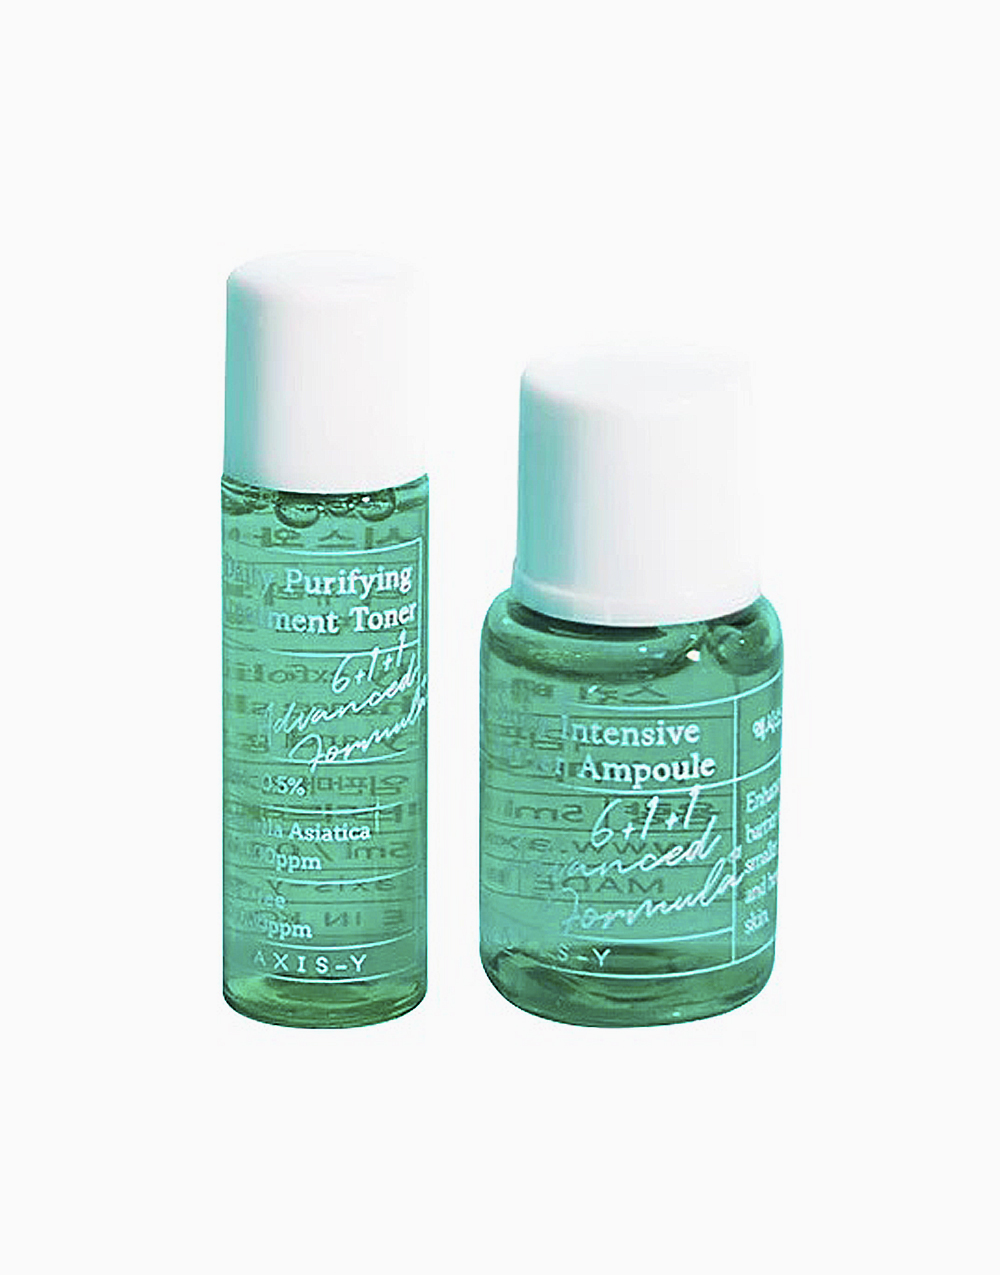 Toner and Ampoule Mini by AXIS-Y